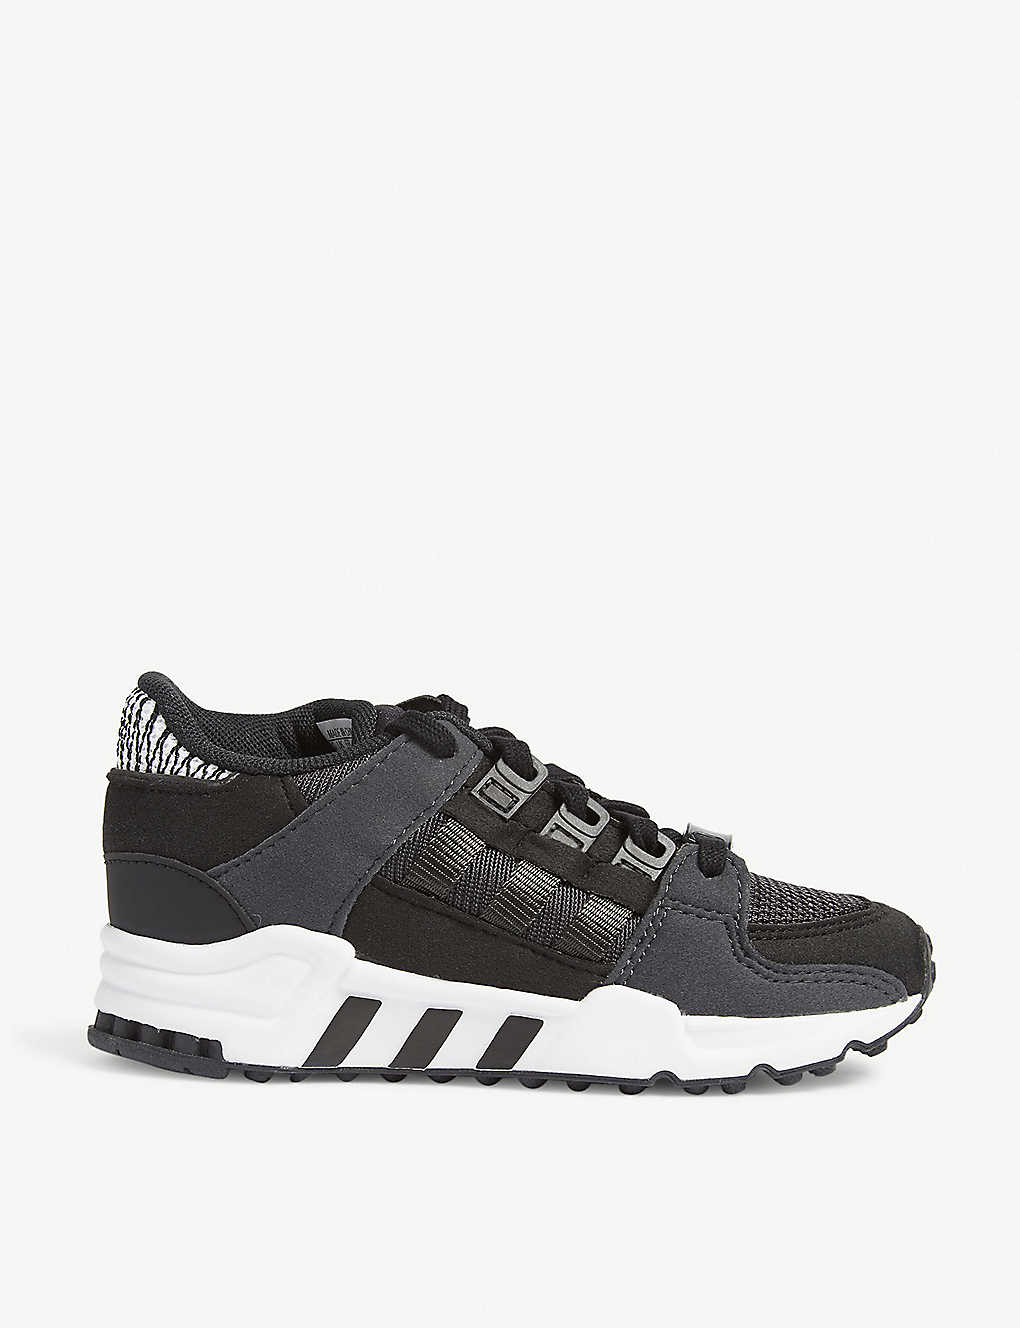 detailed look 73f4f 82d19 ADIDAS - EQT Support trainers 4-9 years   Selfridges.com